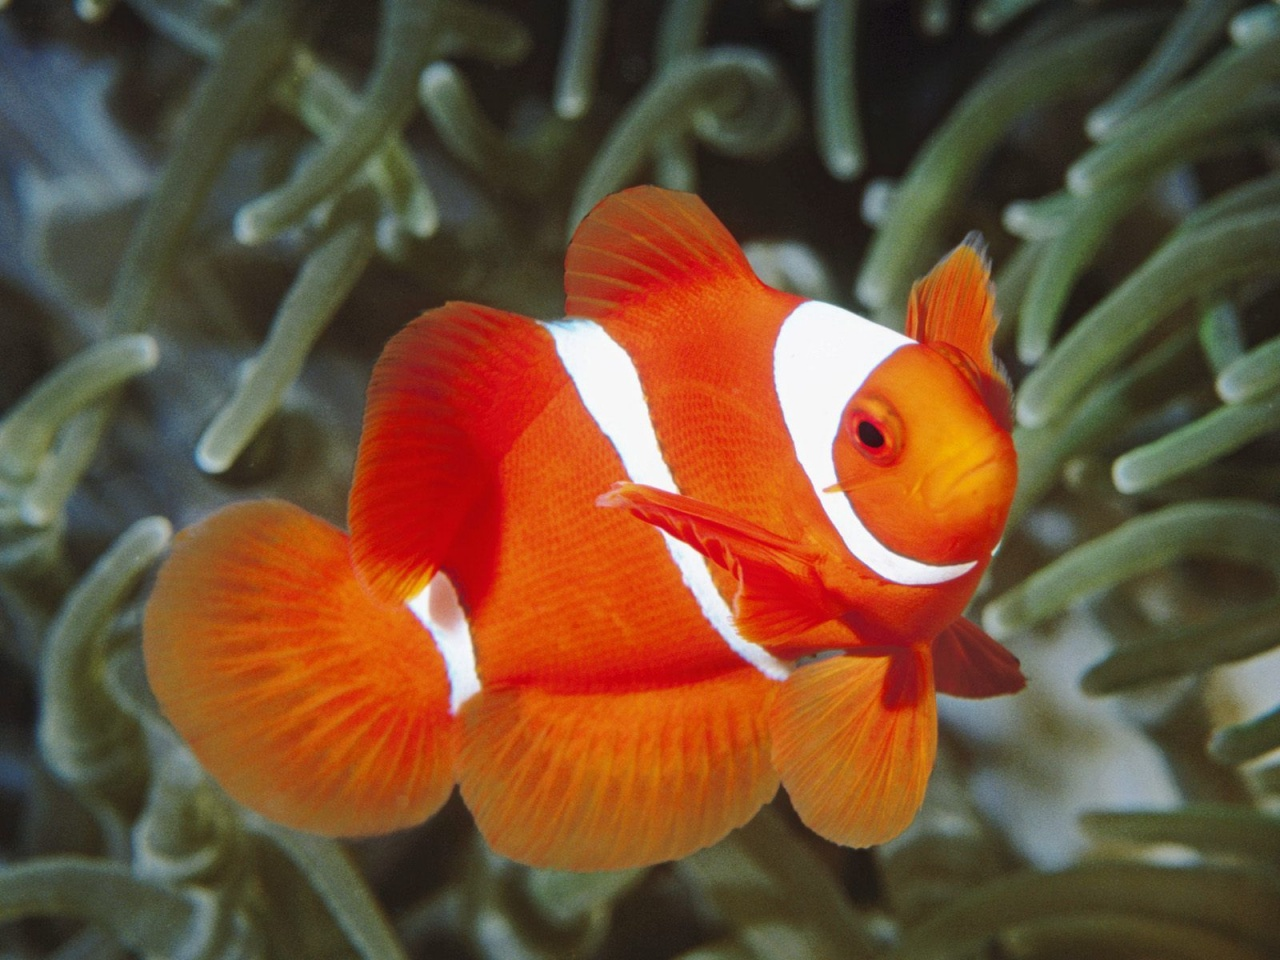 white-and-orange-fish-wallpapers_11723_1280x960.jpg